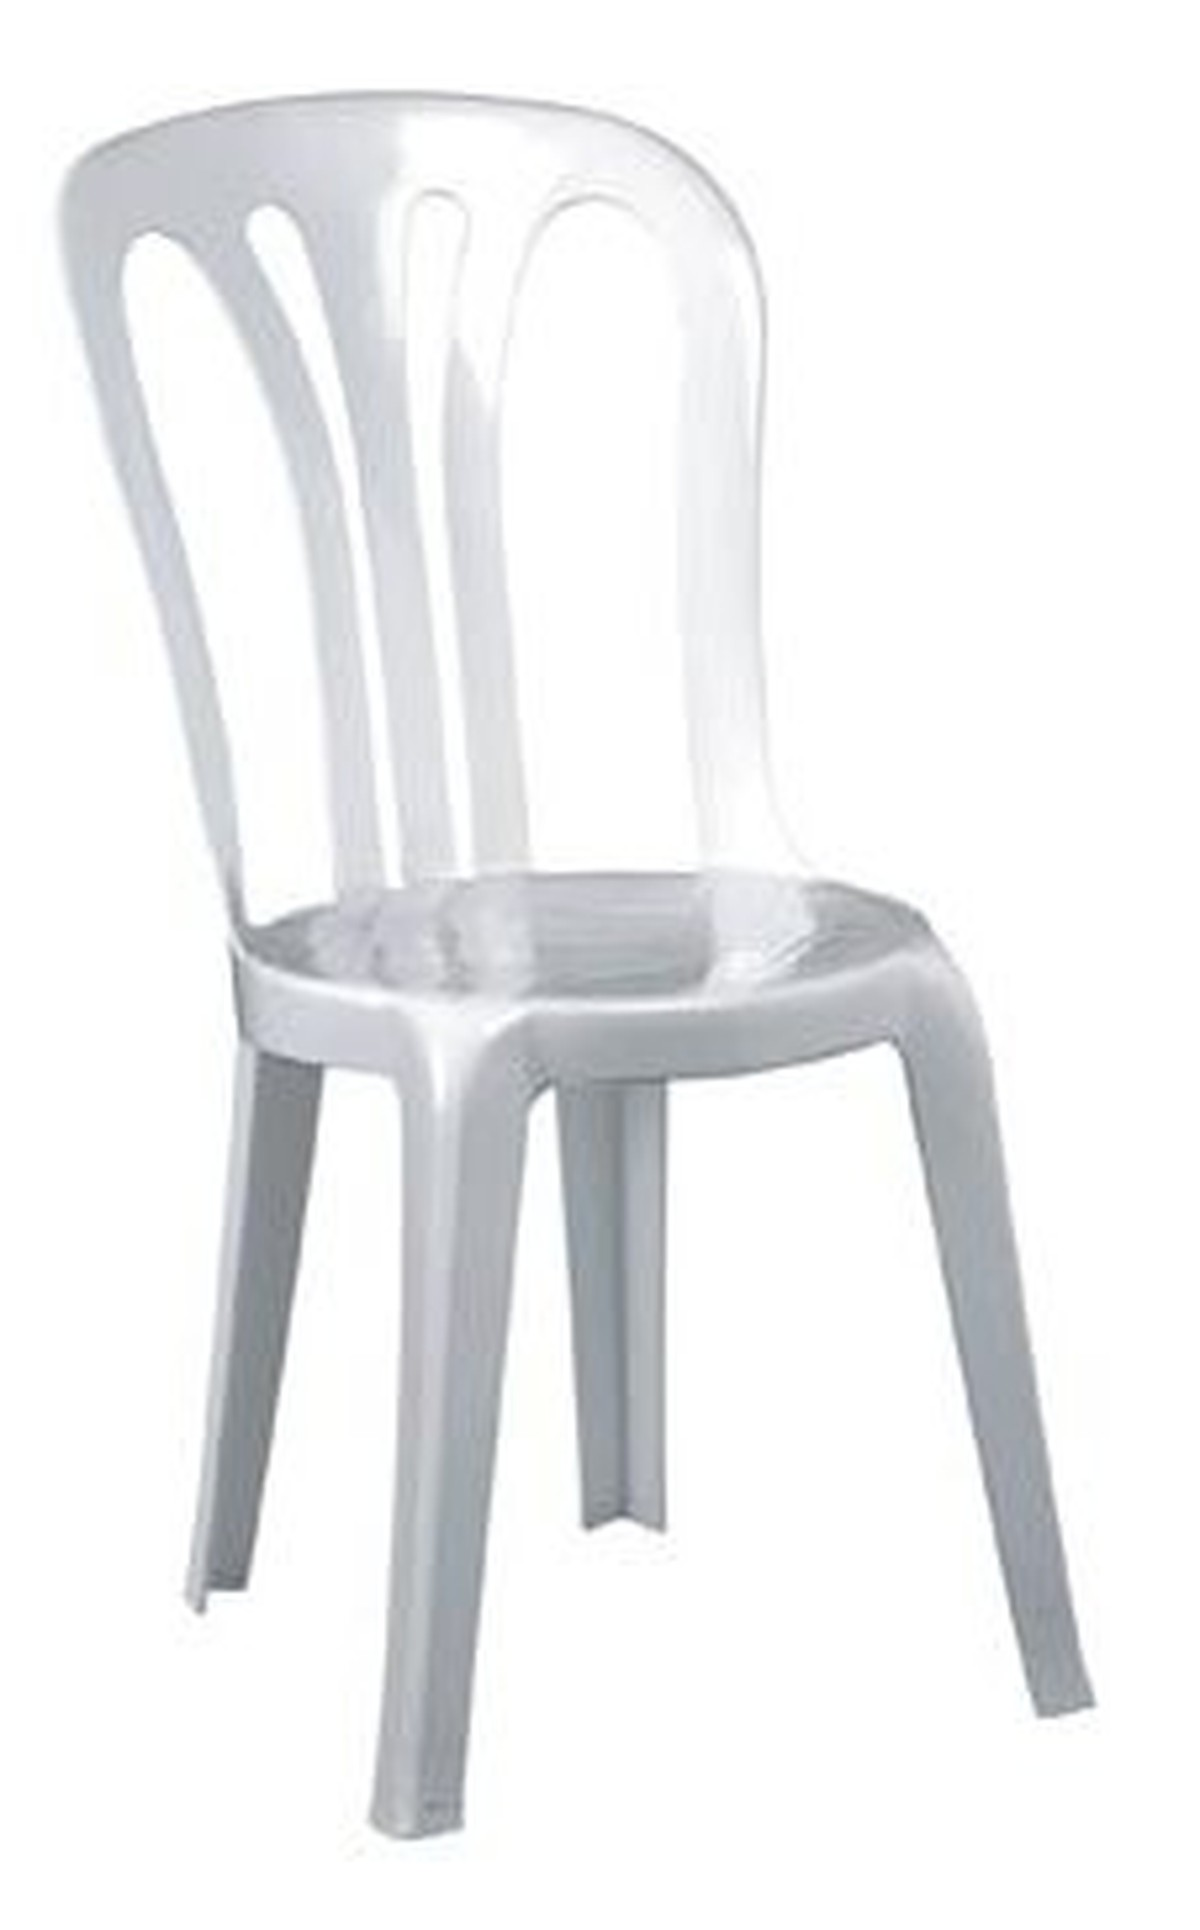 Plastic Outdoor Stackable Chairs Secondhand Hotel Furniture Outdoor Furniture 4000x New